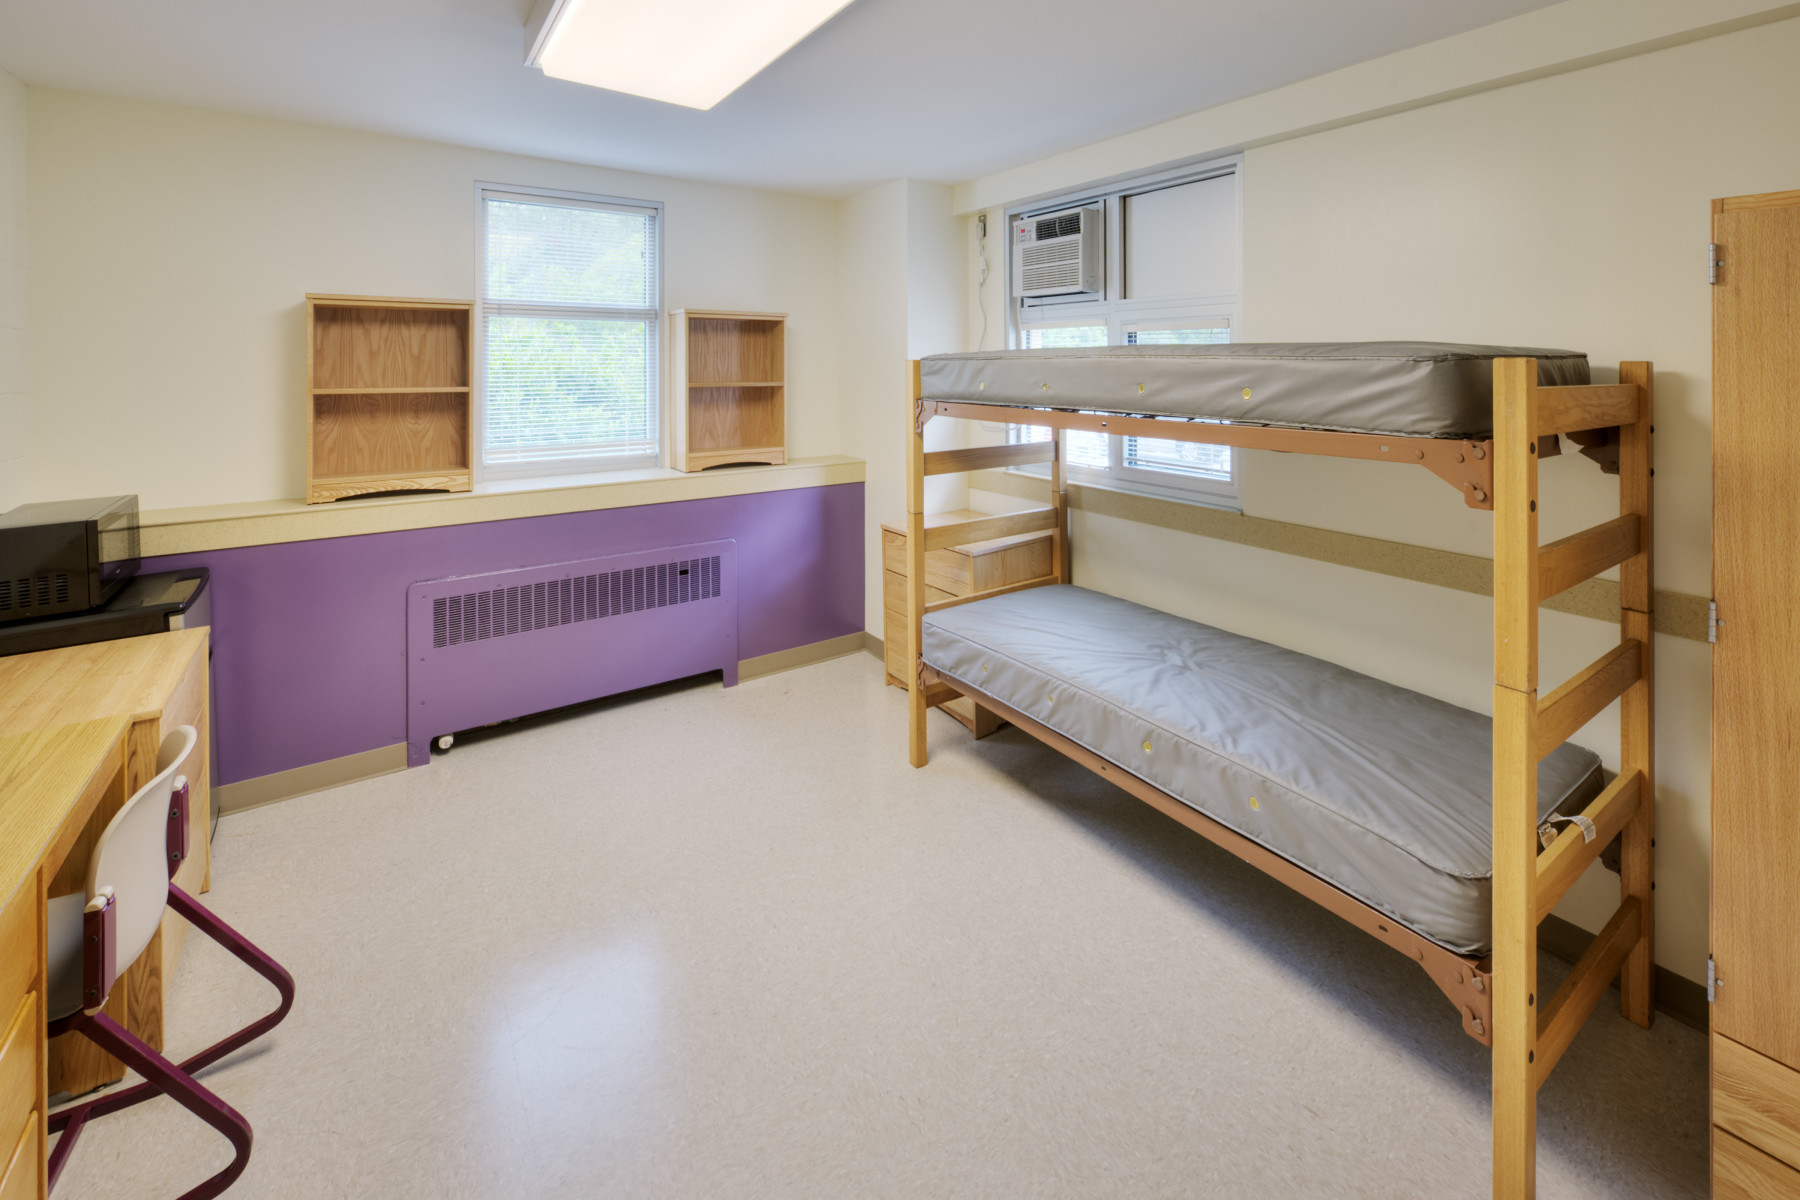 Ecu Tyler Residence Hall Barnhill Contracting Company